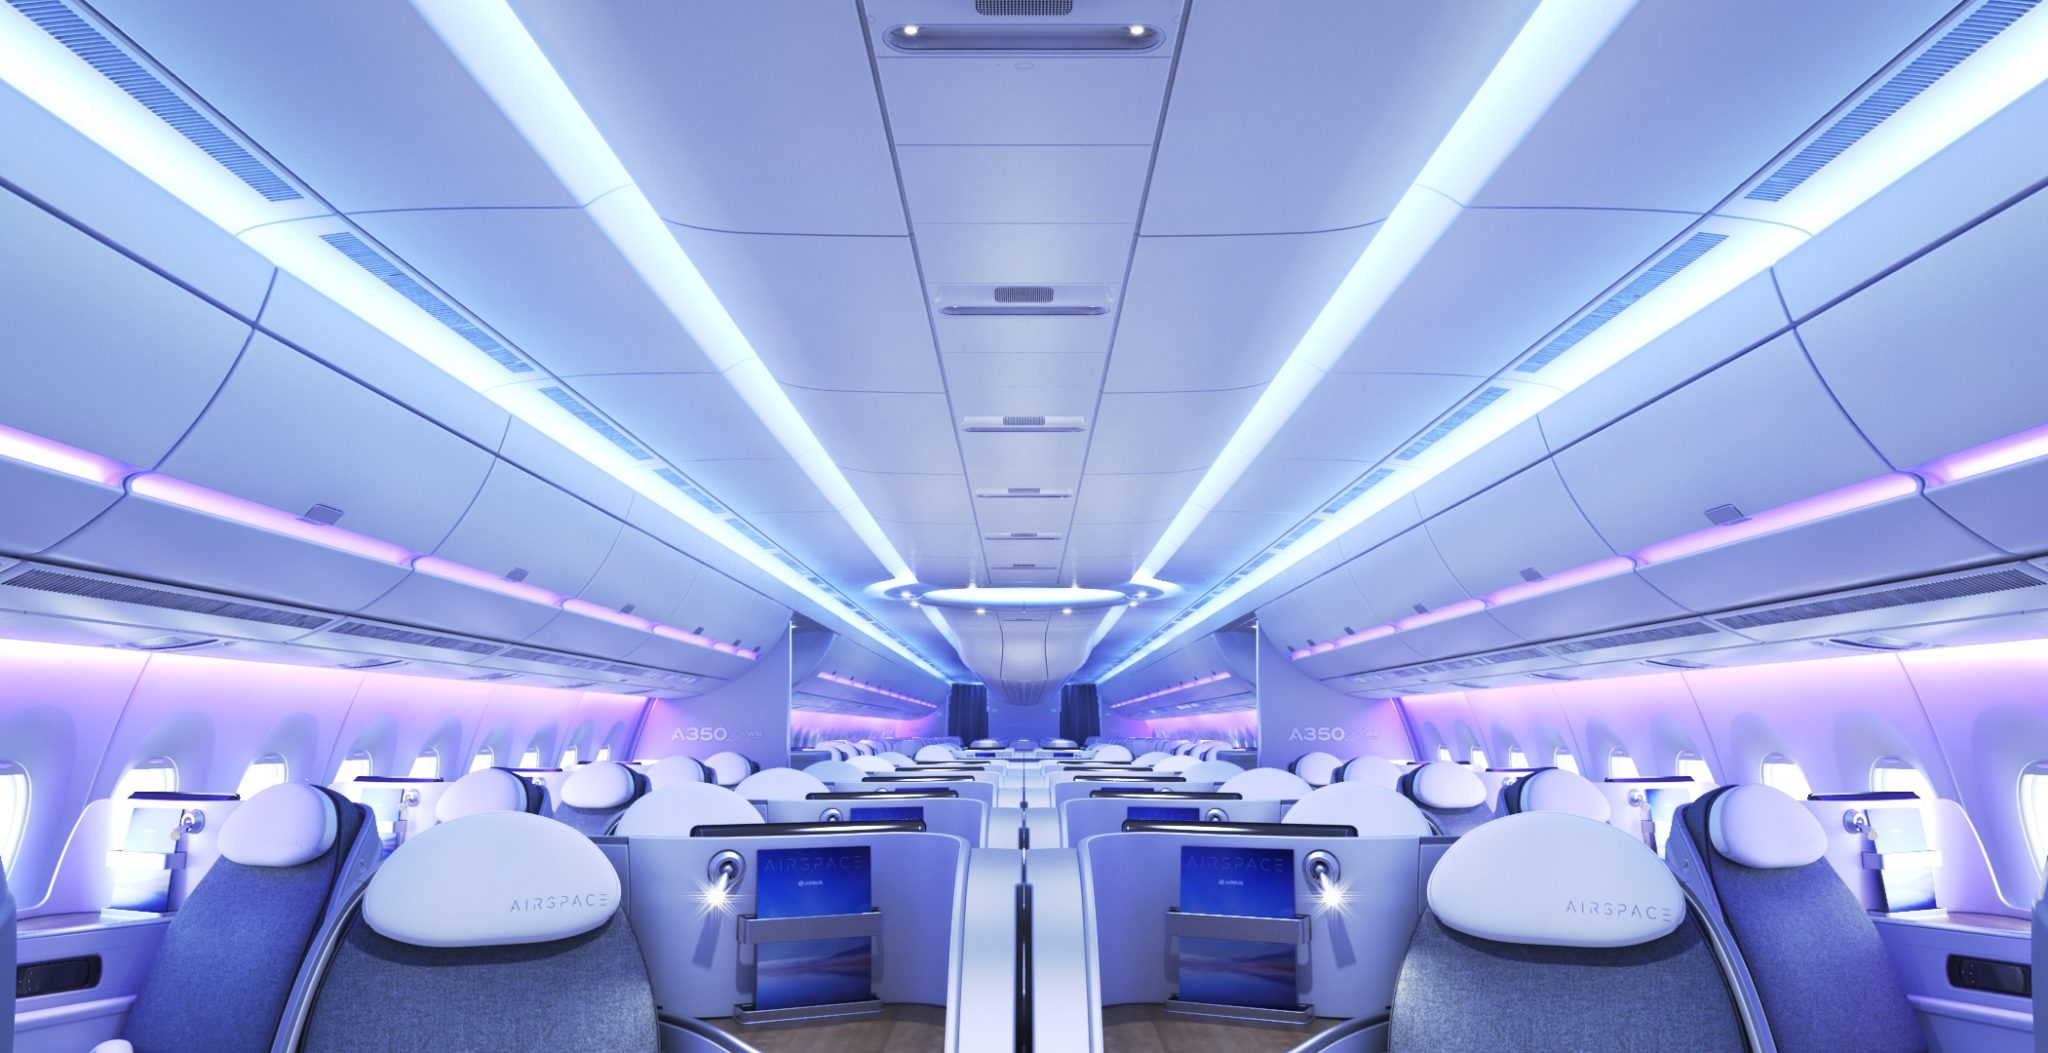 Airbus A320 cabin offers numerous passenger experience improvements over older cabins. Image: Airbus